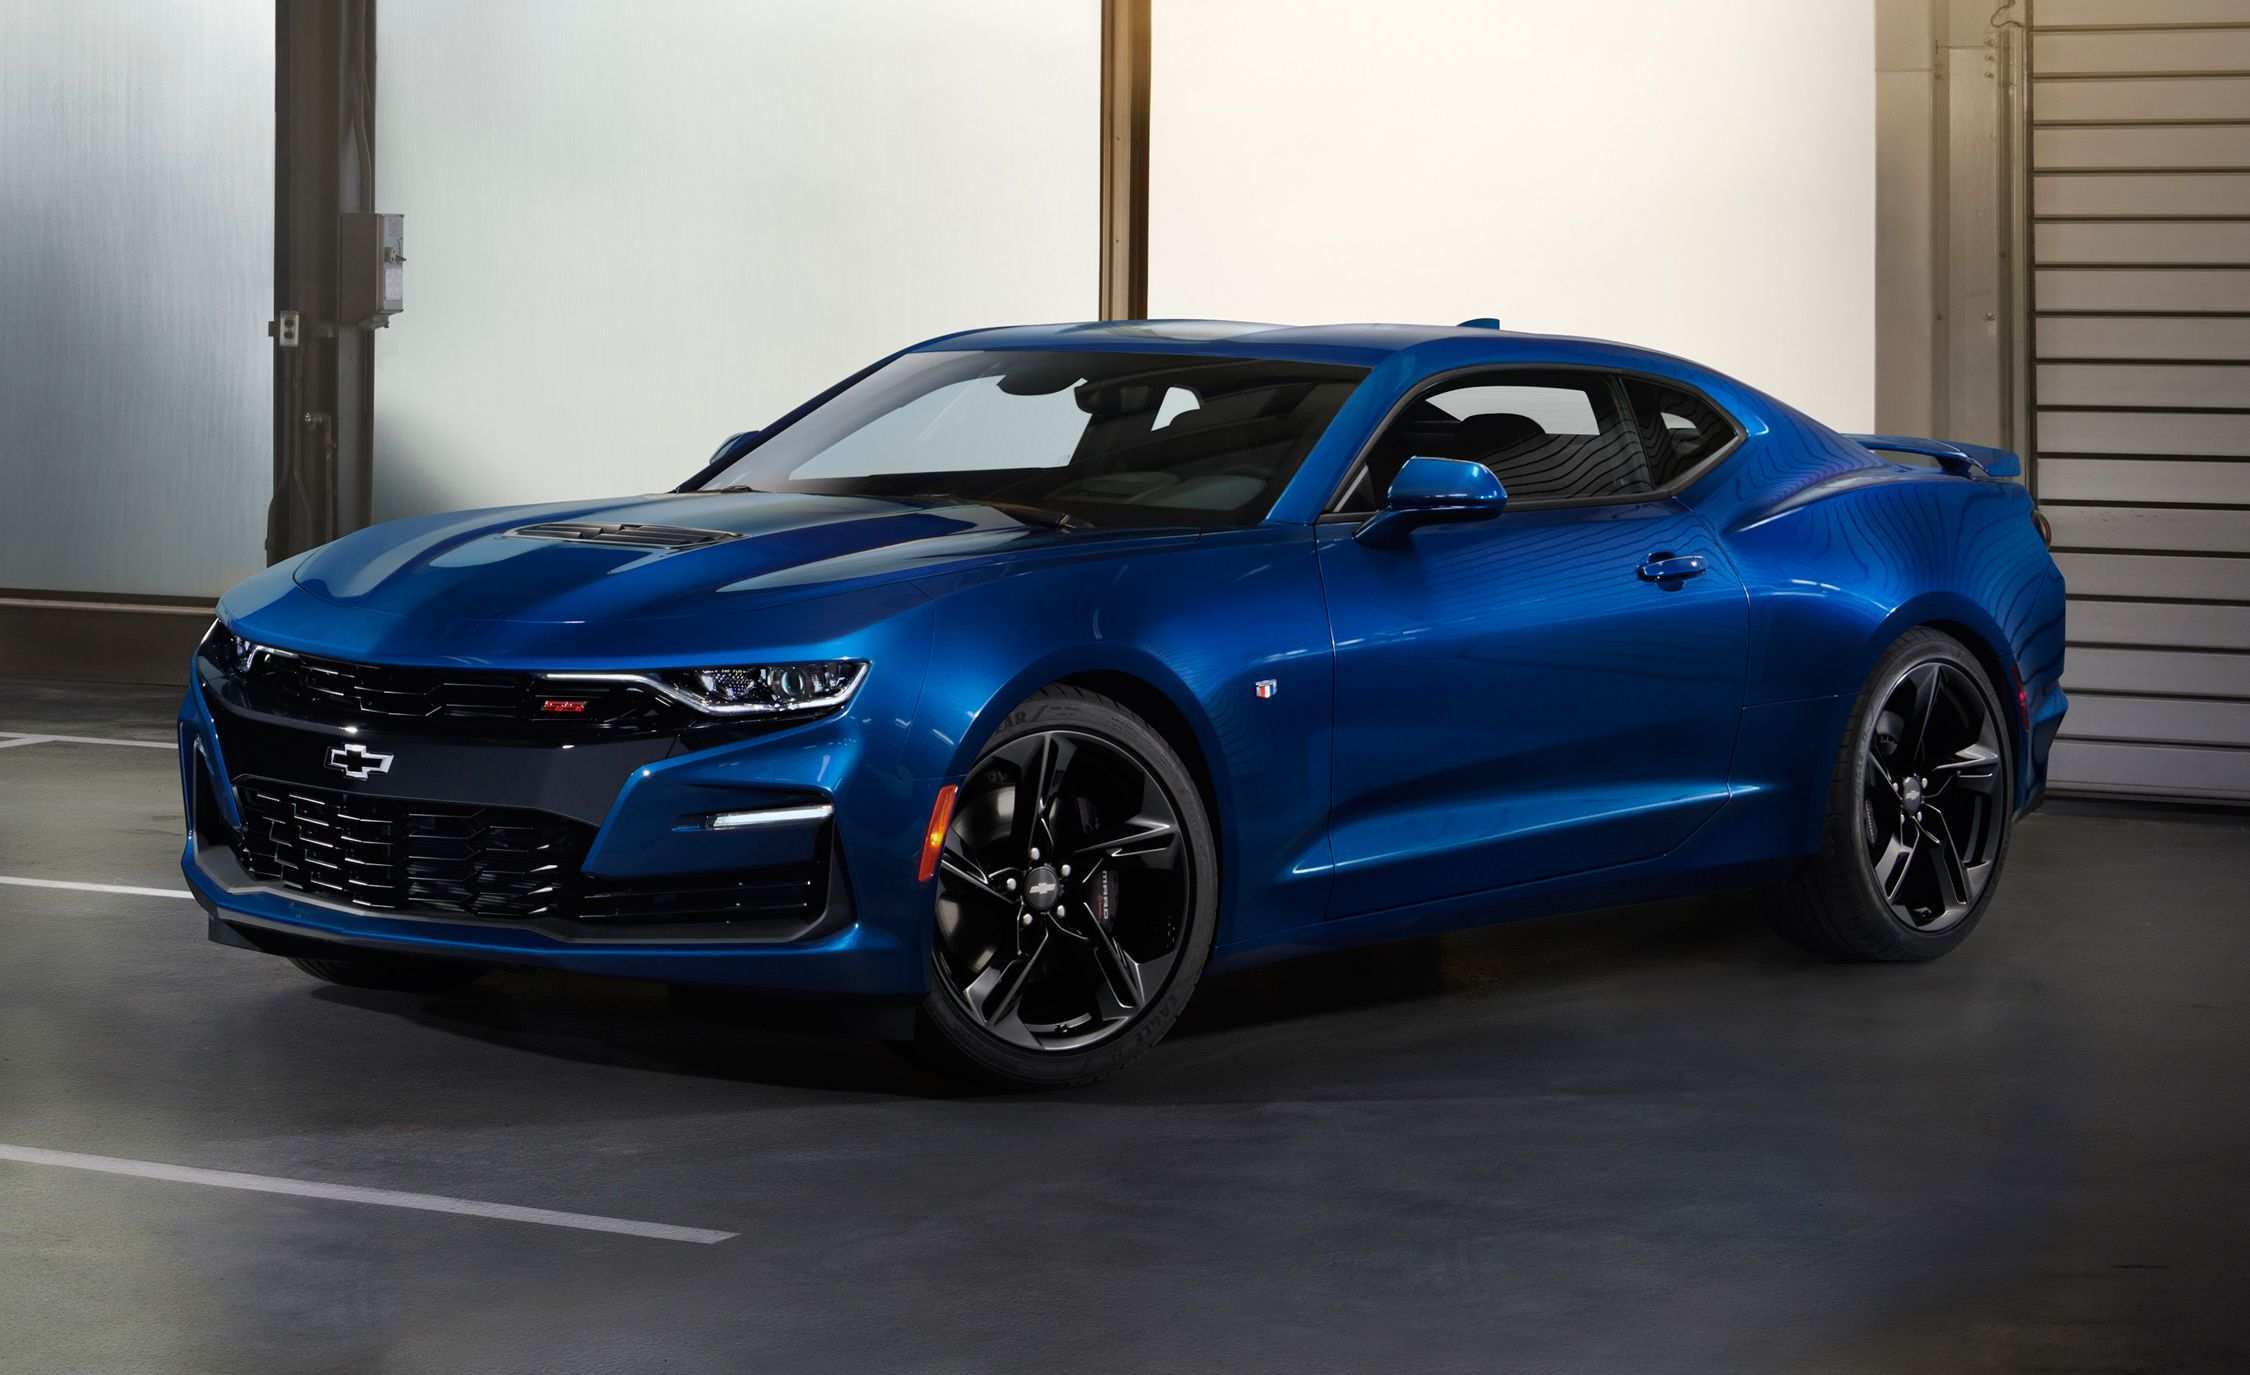 49 Concept of 2019 Chevrolet Camaro Engine Price for 2019 Chevrolet Camaro Engine